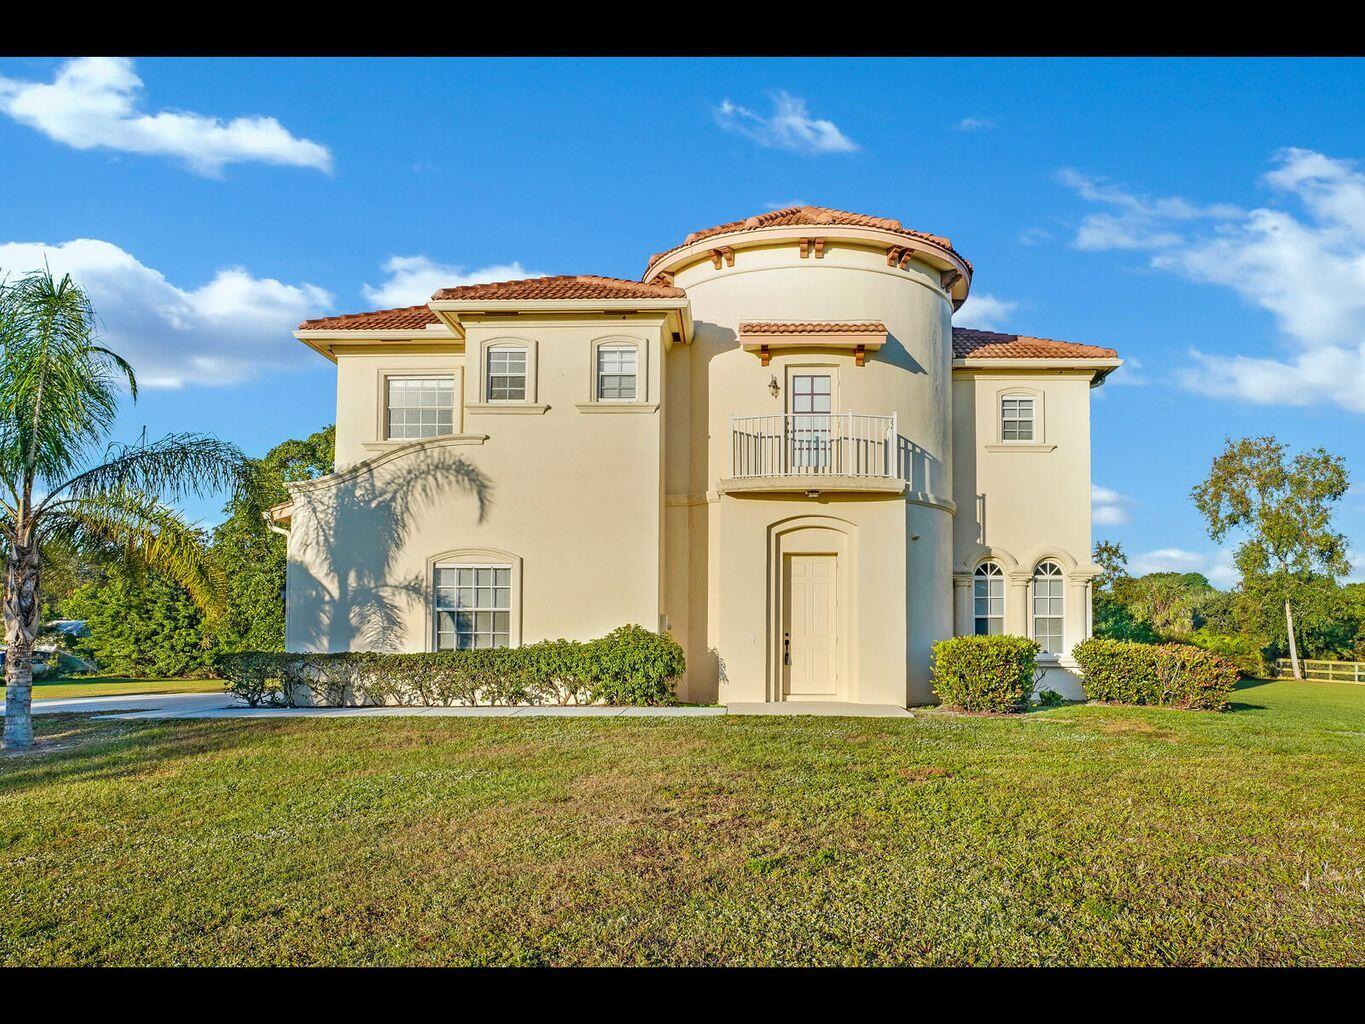 Impressive 2 Story CBS Home; This 5 BD/4.5 Bath w/2 Car Garage Residence has a Beautiful Foyer w/Circular Staircase; Formal Living and Dining Room(s); Large Rooms and Eat-In Kitchen; Upstairs features huge Master Suite as well as an Upstairs Balcony. Large Pets Allowed.